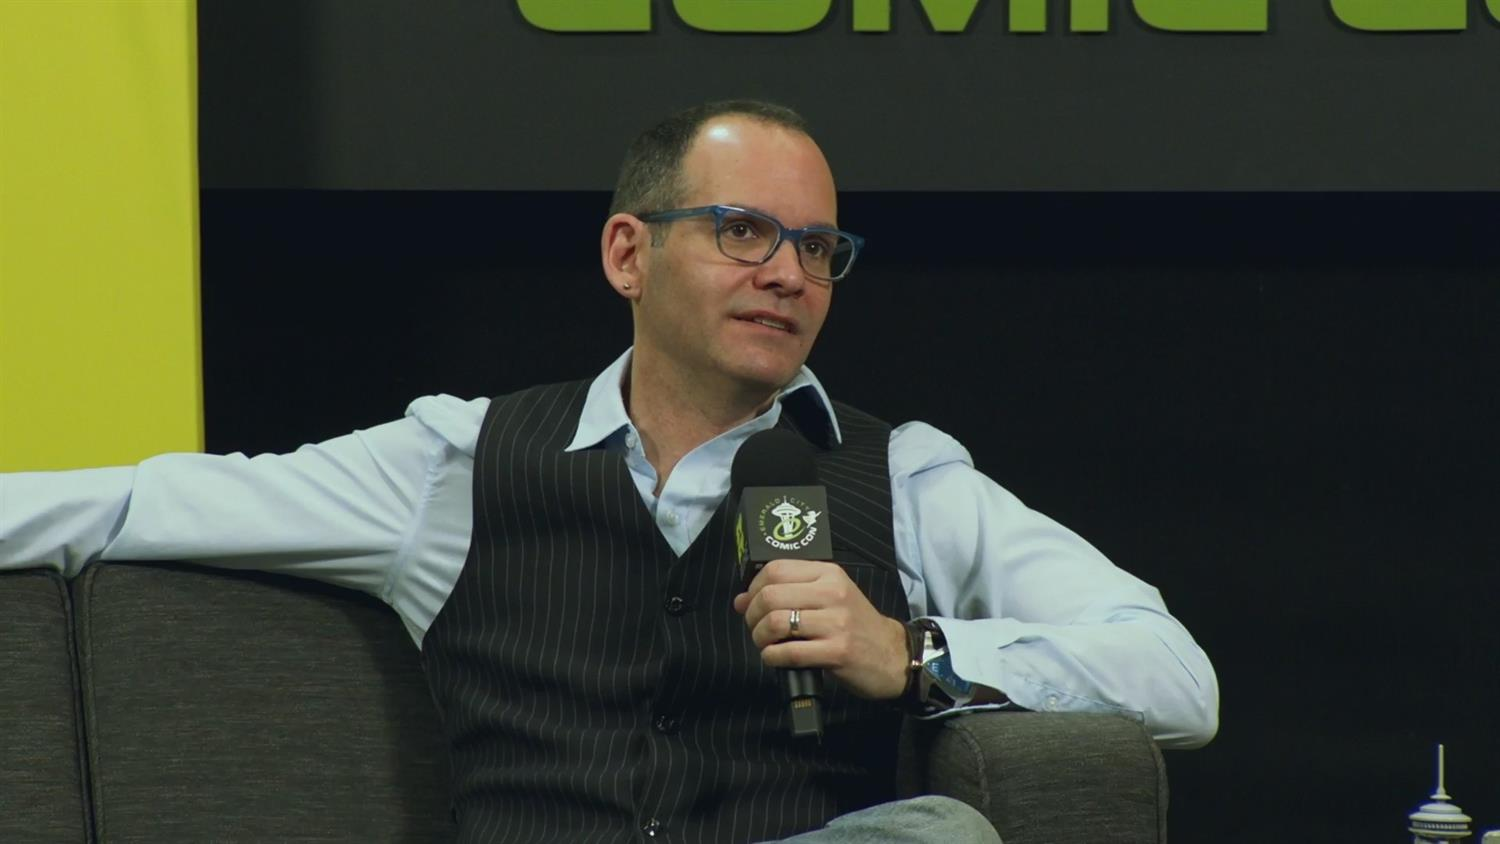 Judd Winick: From Real World To Comics (ECCC 2019)